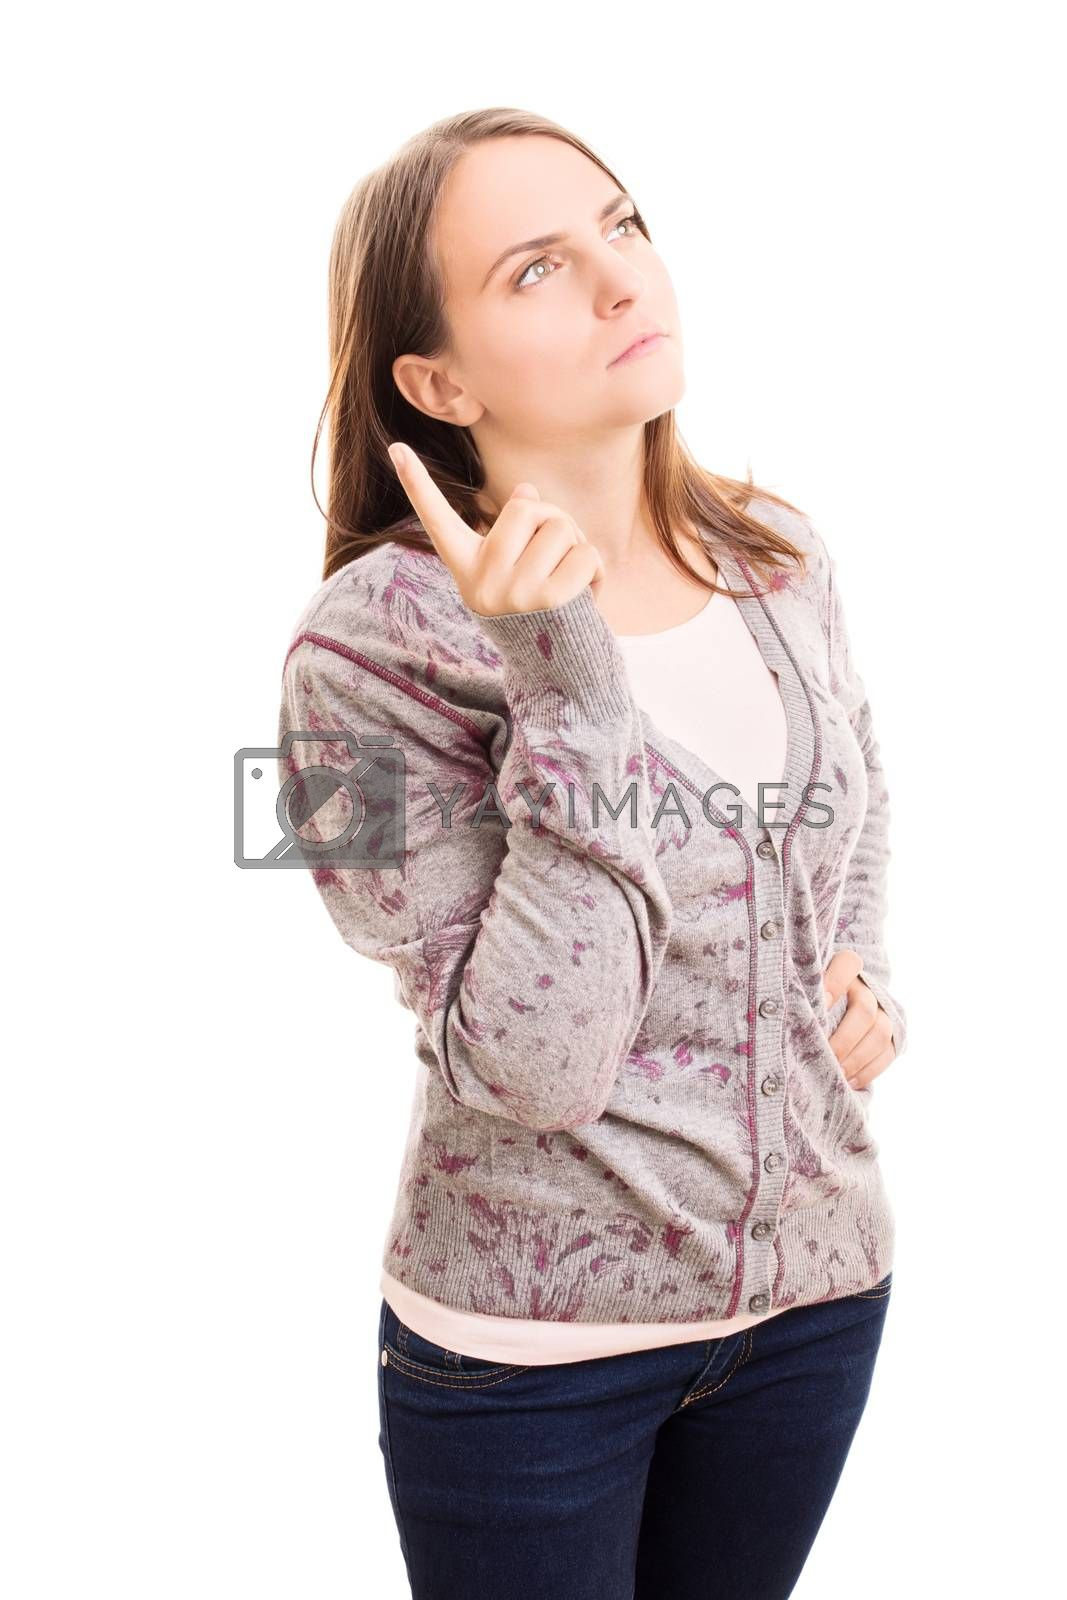 Beautiful young girl holding her point finger up thinking about something, isolated on white background.